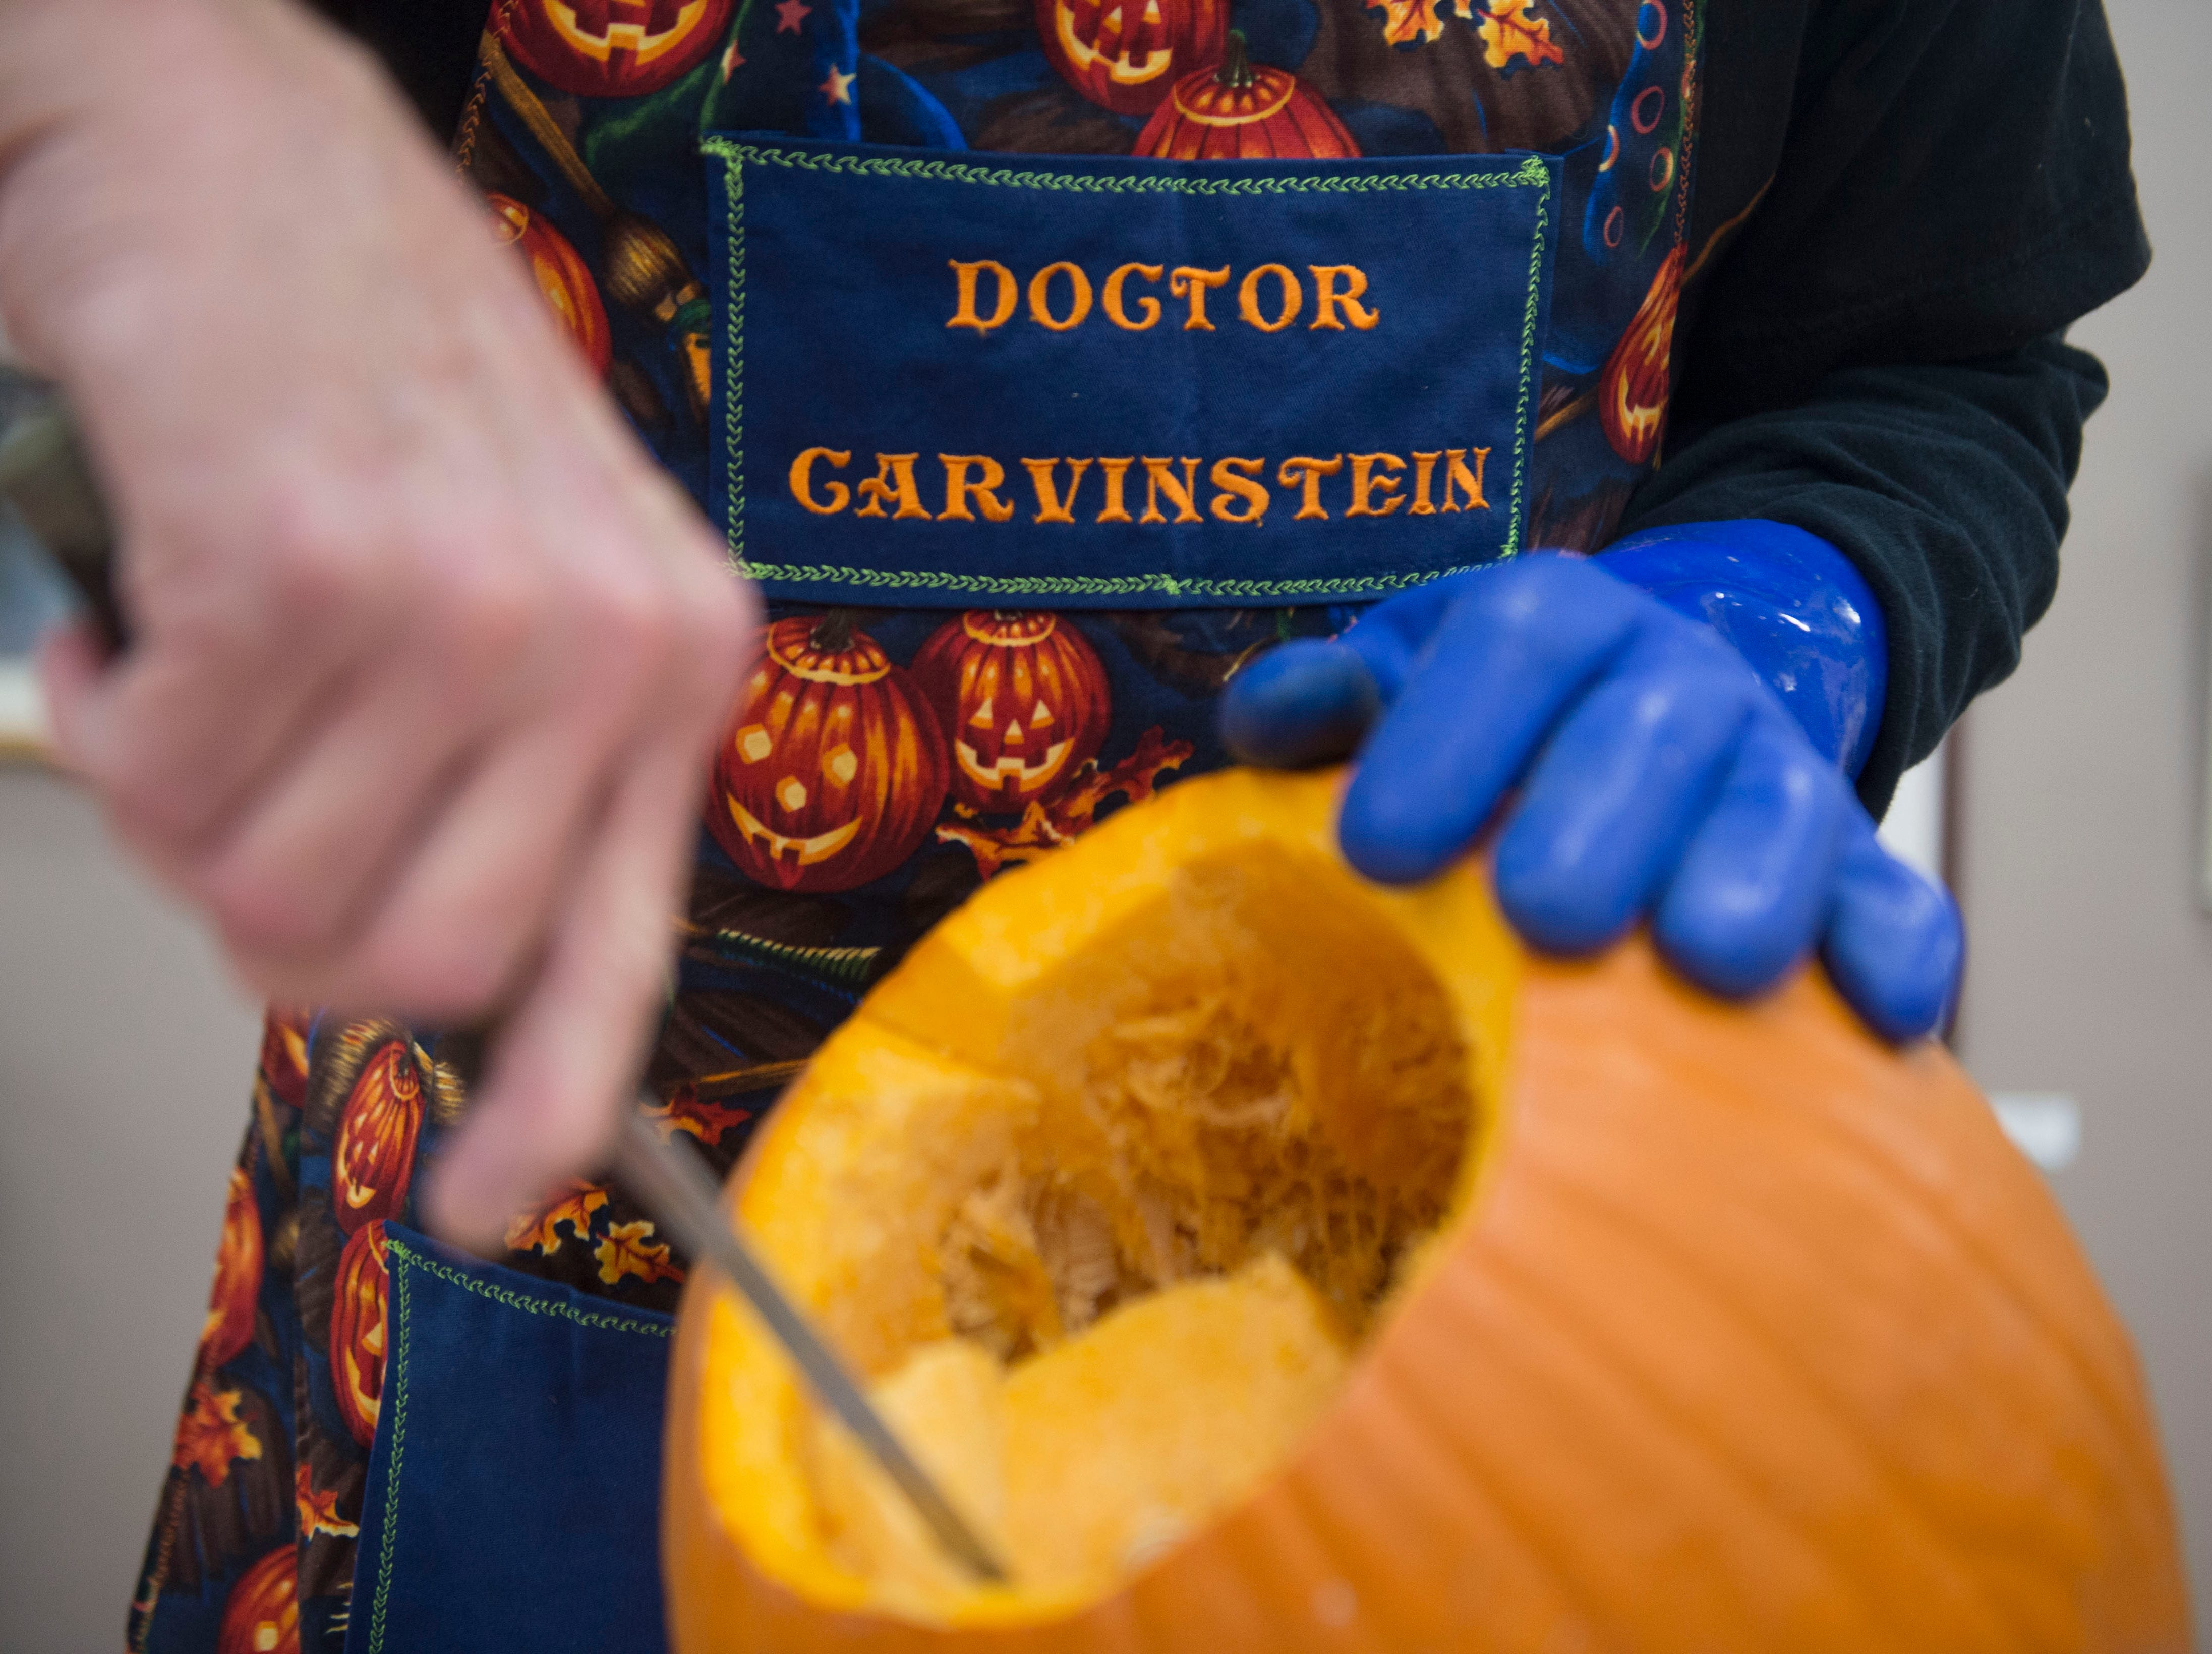 Artist Ken Clayton, also known as Dr. Carvinstein, scoops the seeds out of a pumpkin he is carving at the Fountain City Art Center, Tuesday, Oct. 16, 2018. Clayton has been carving for over 50 years.